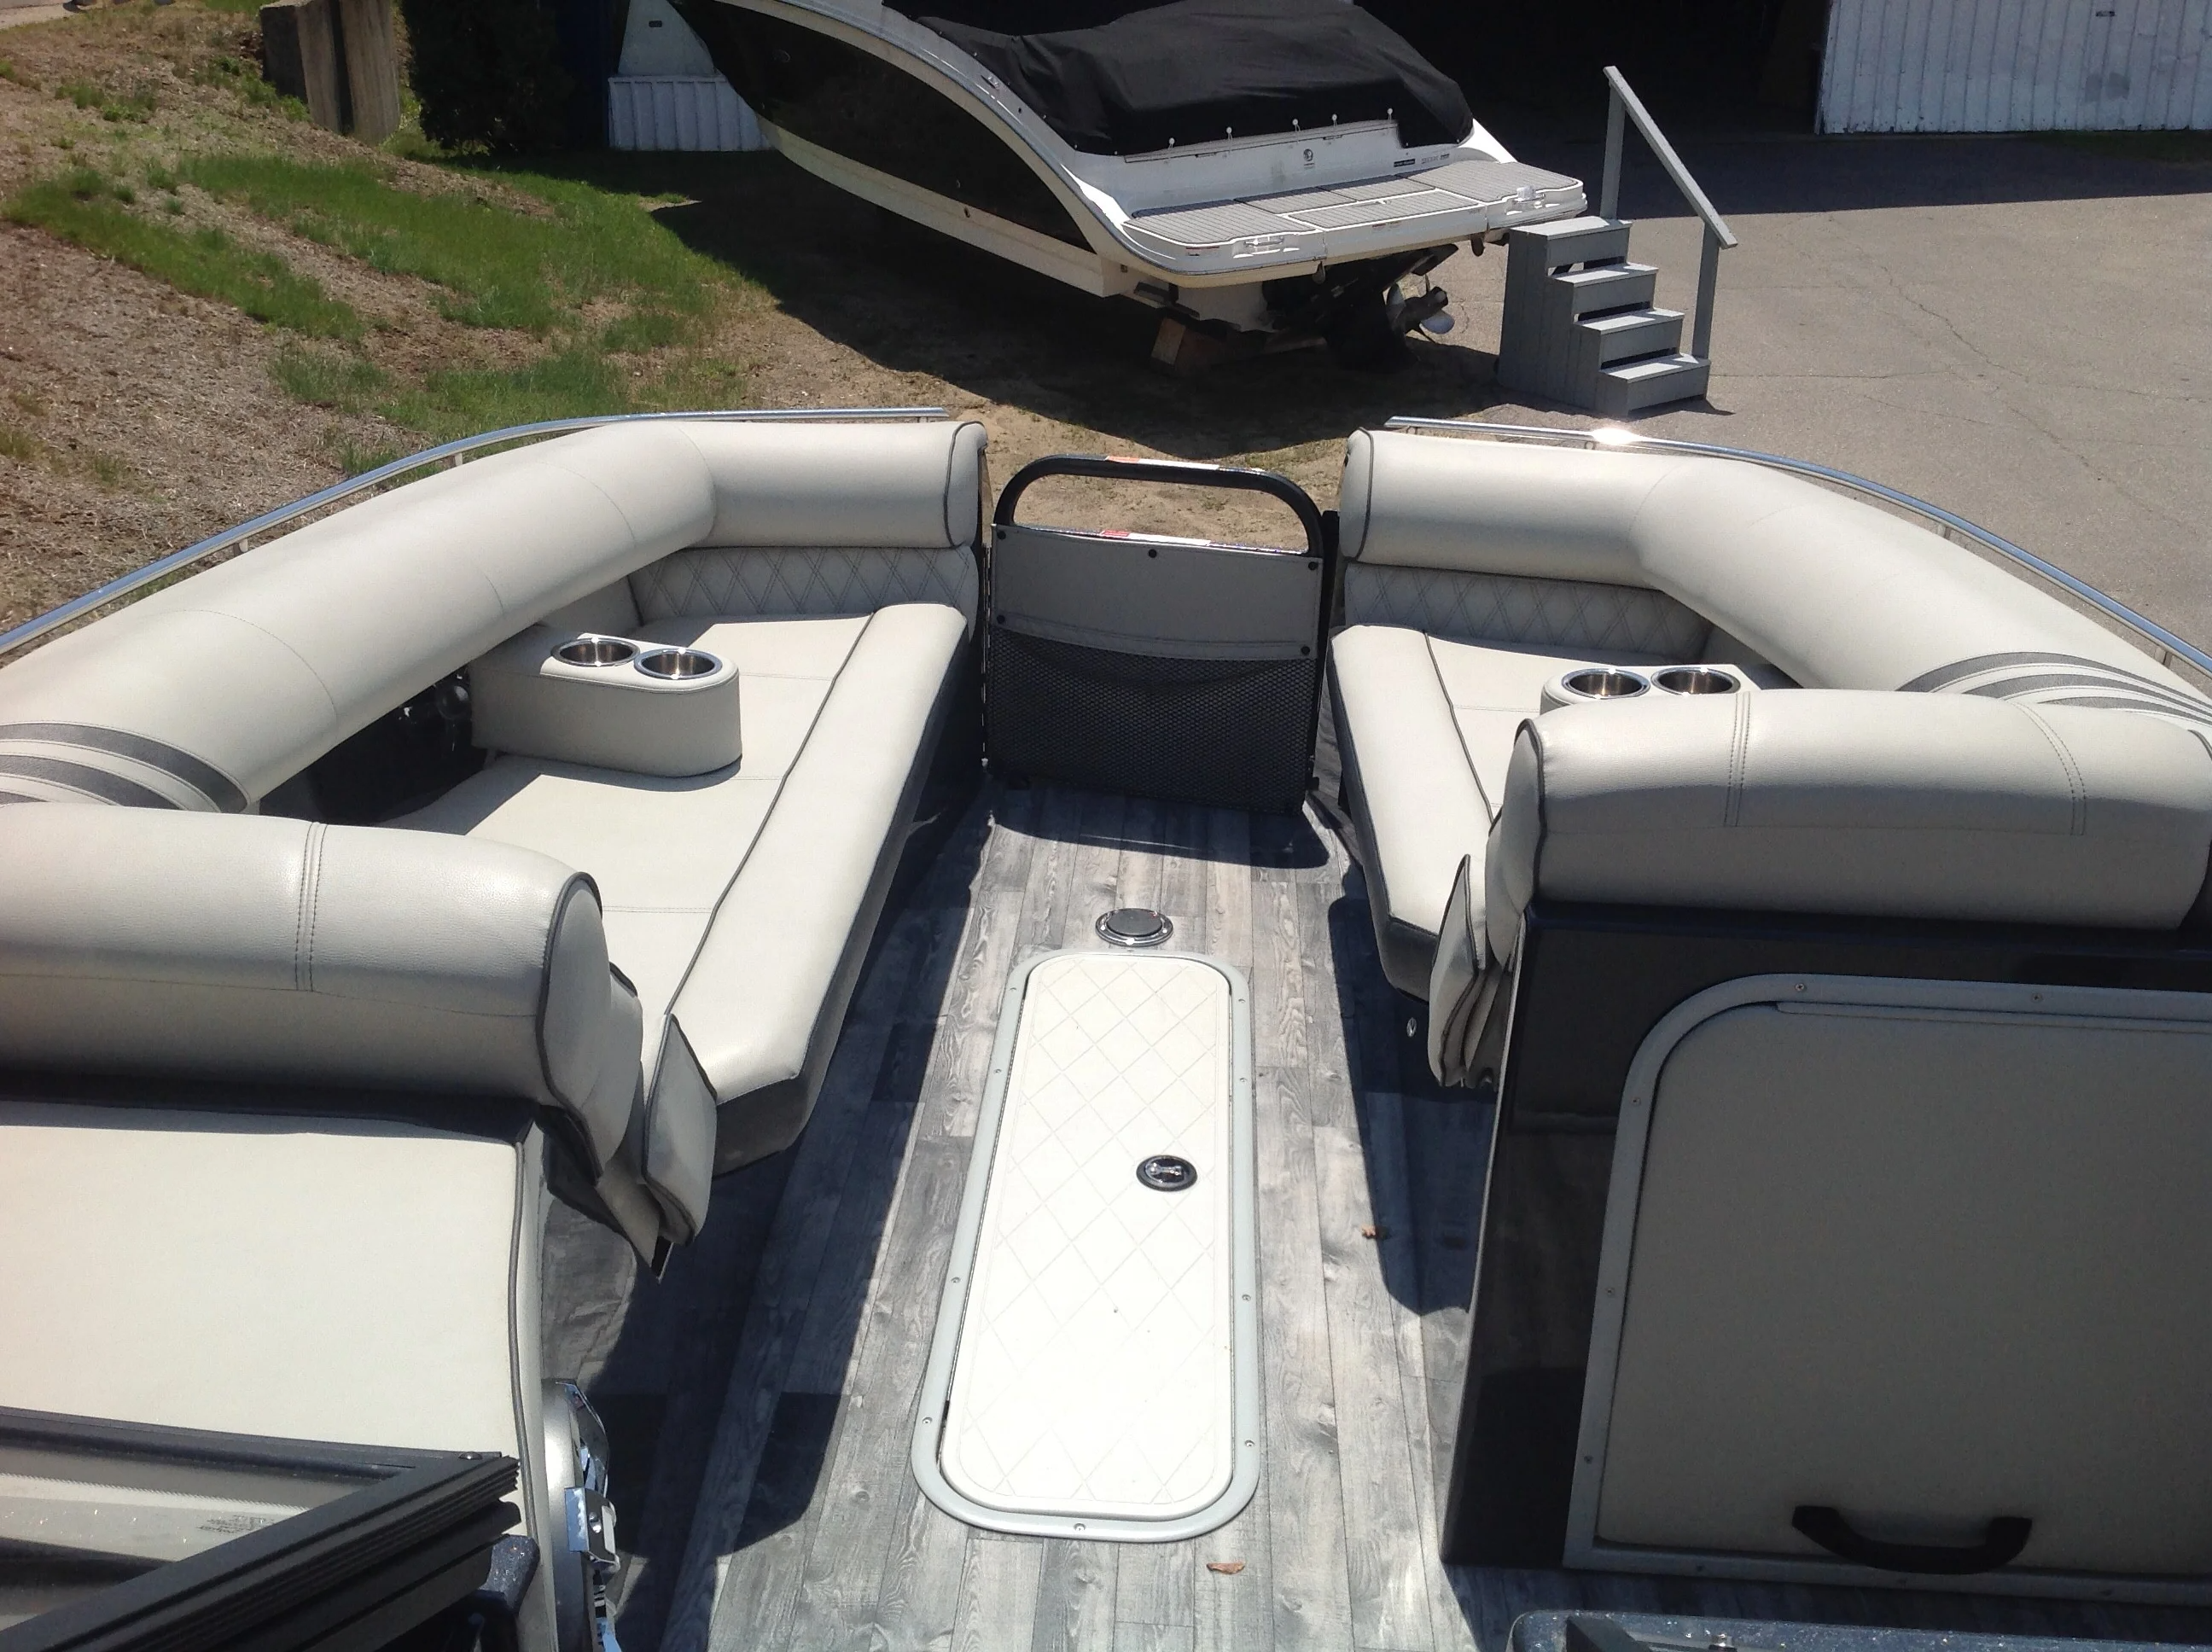 2018 Crest boat for sale, model of the boat is Continental Nx 270cs & Image # 5 of 20